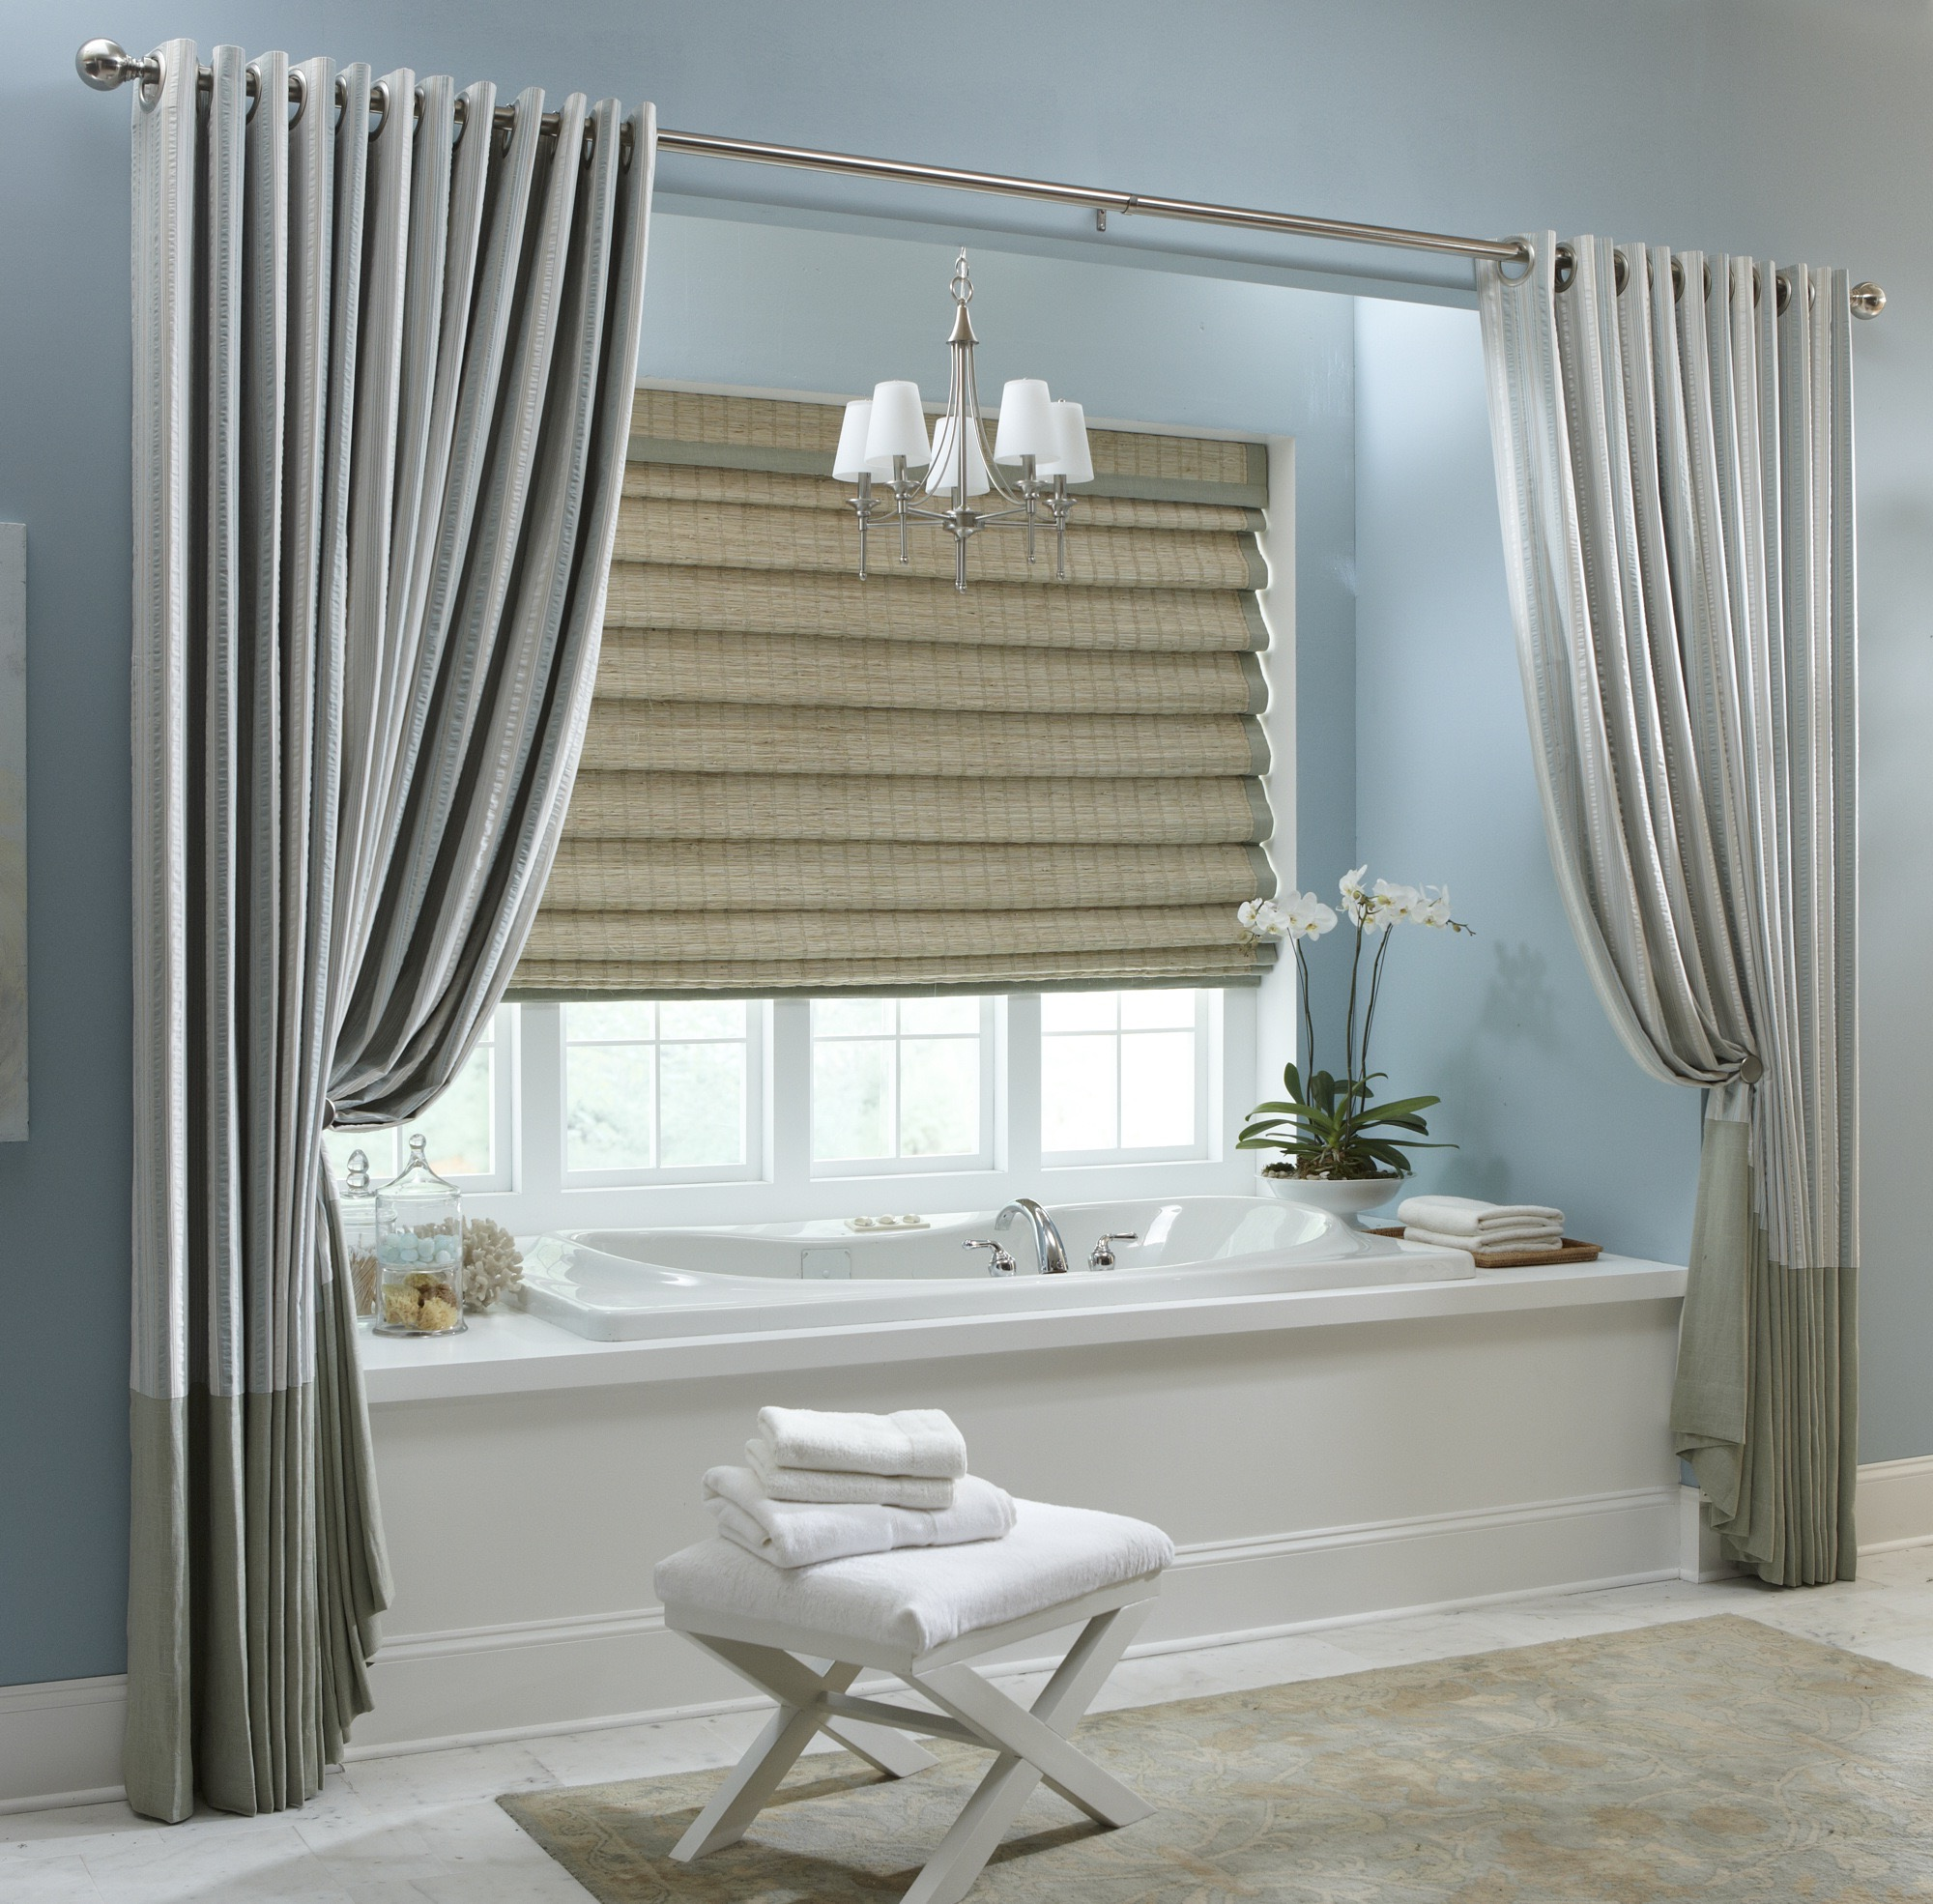 Modern Bathroom Shower Curtain And Bamboo Window Curtain (Image 10 of 15)